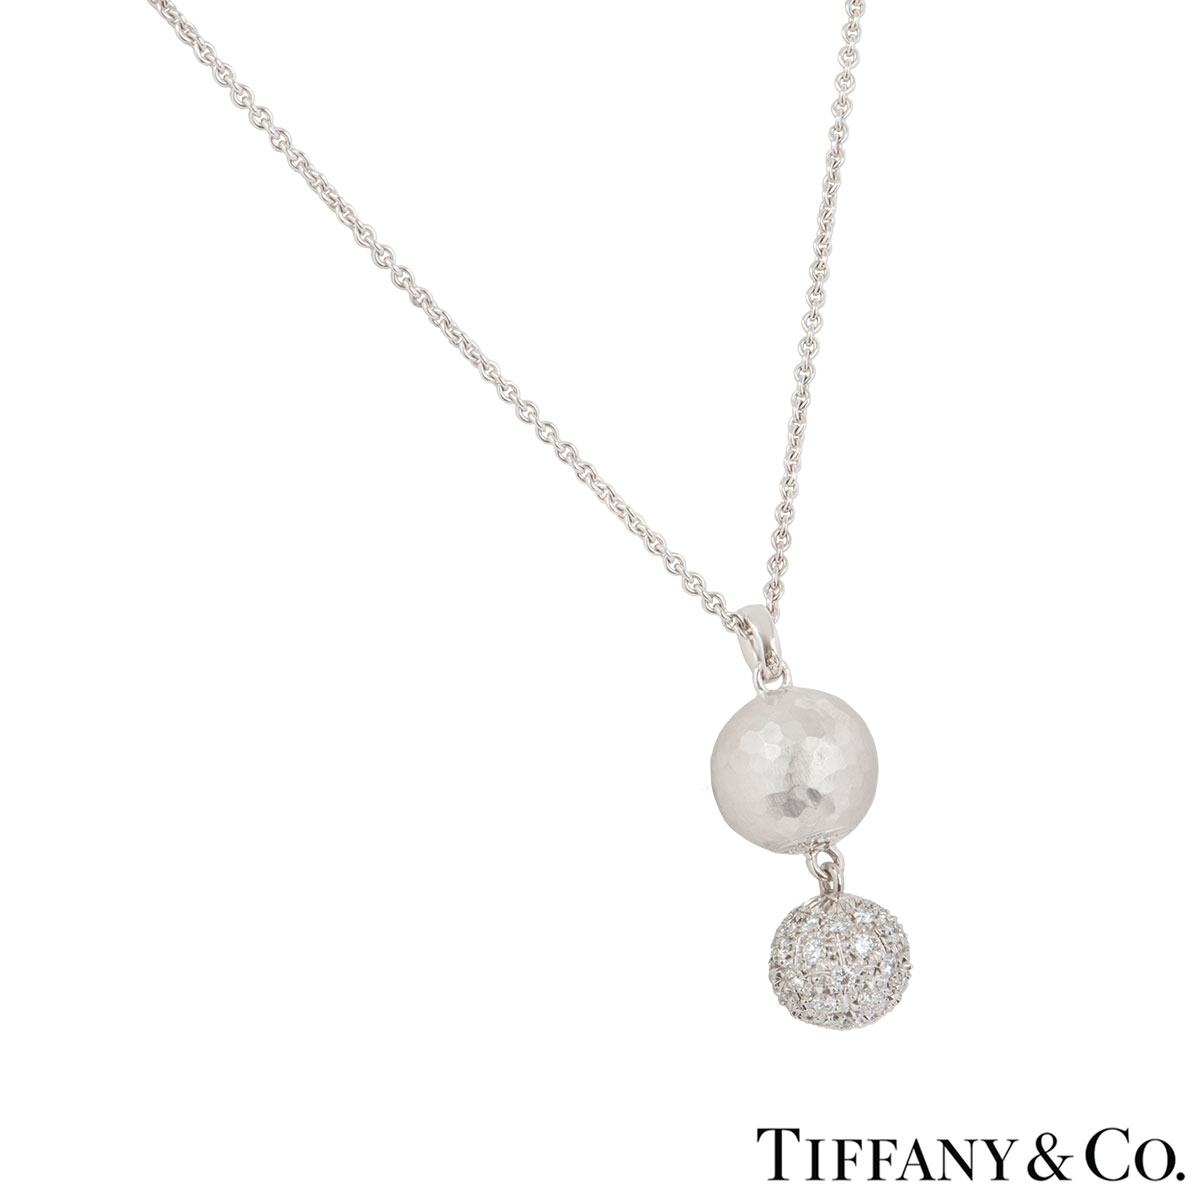 Tiffany & Co. White Gold Paloma Picasso Diamond Necklace